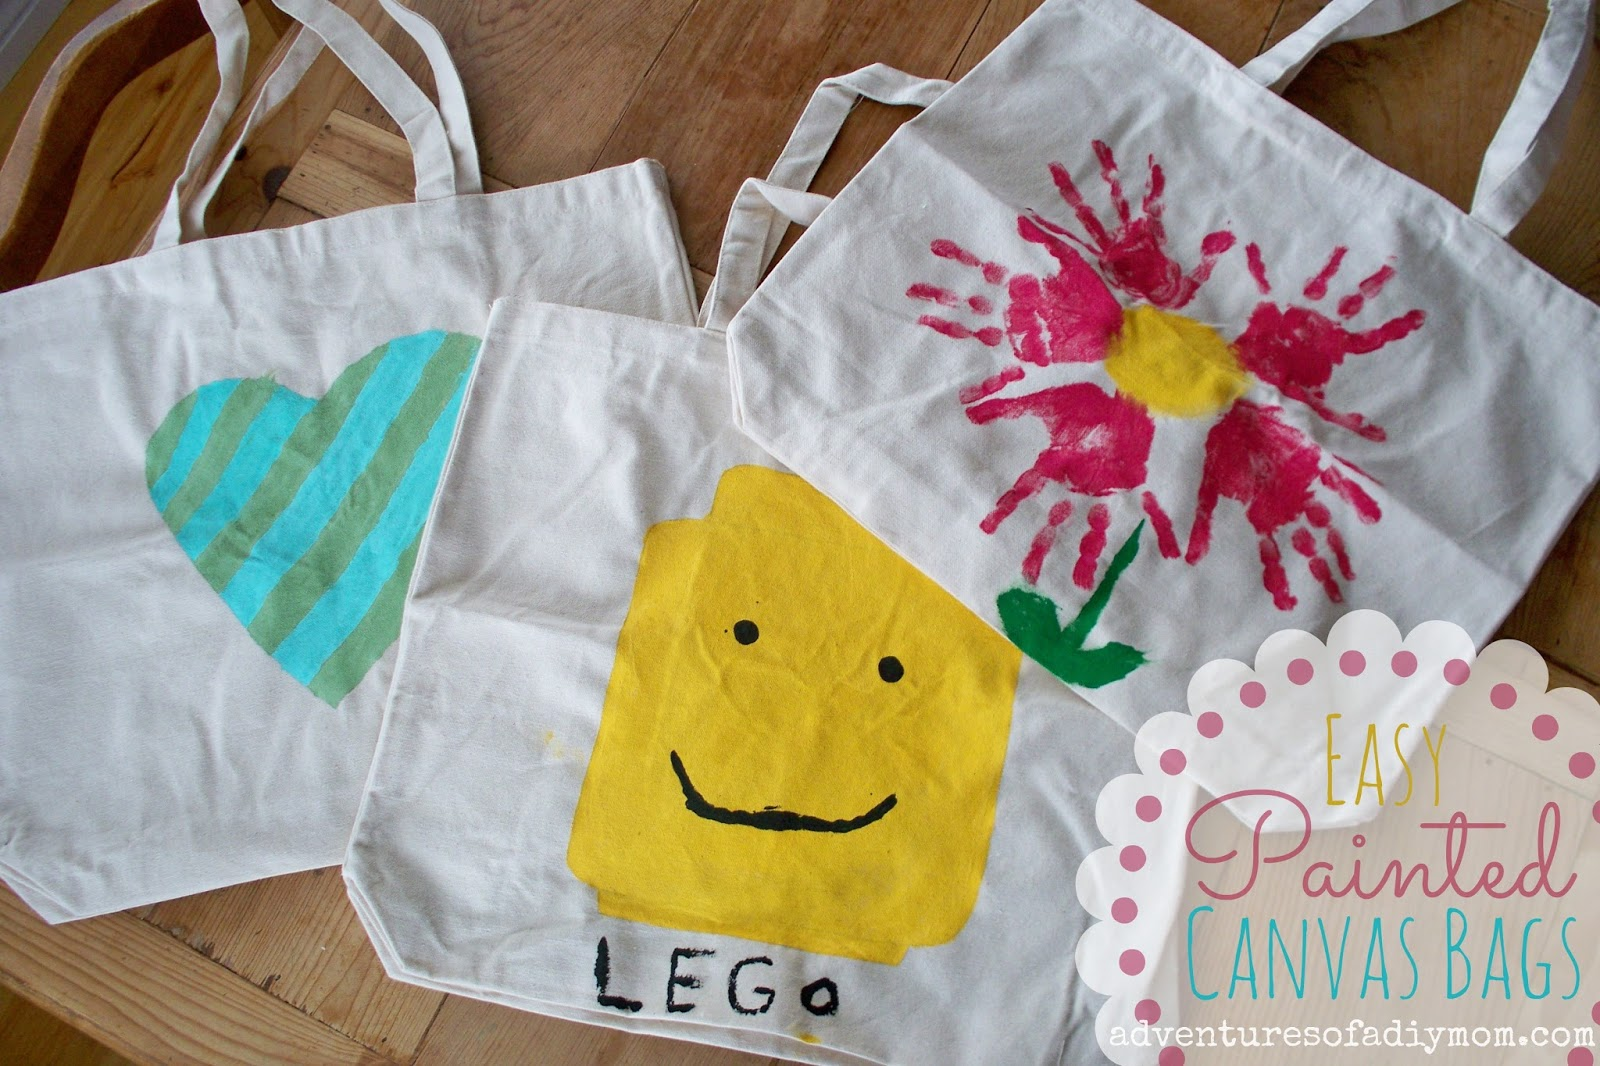 Easy Painted Canvas Bags